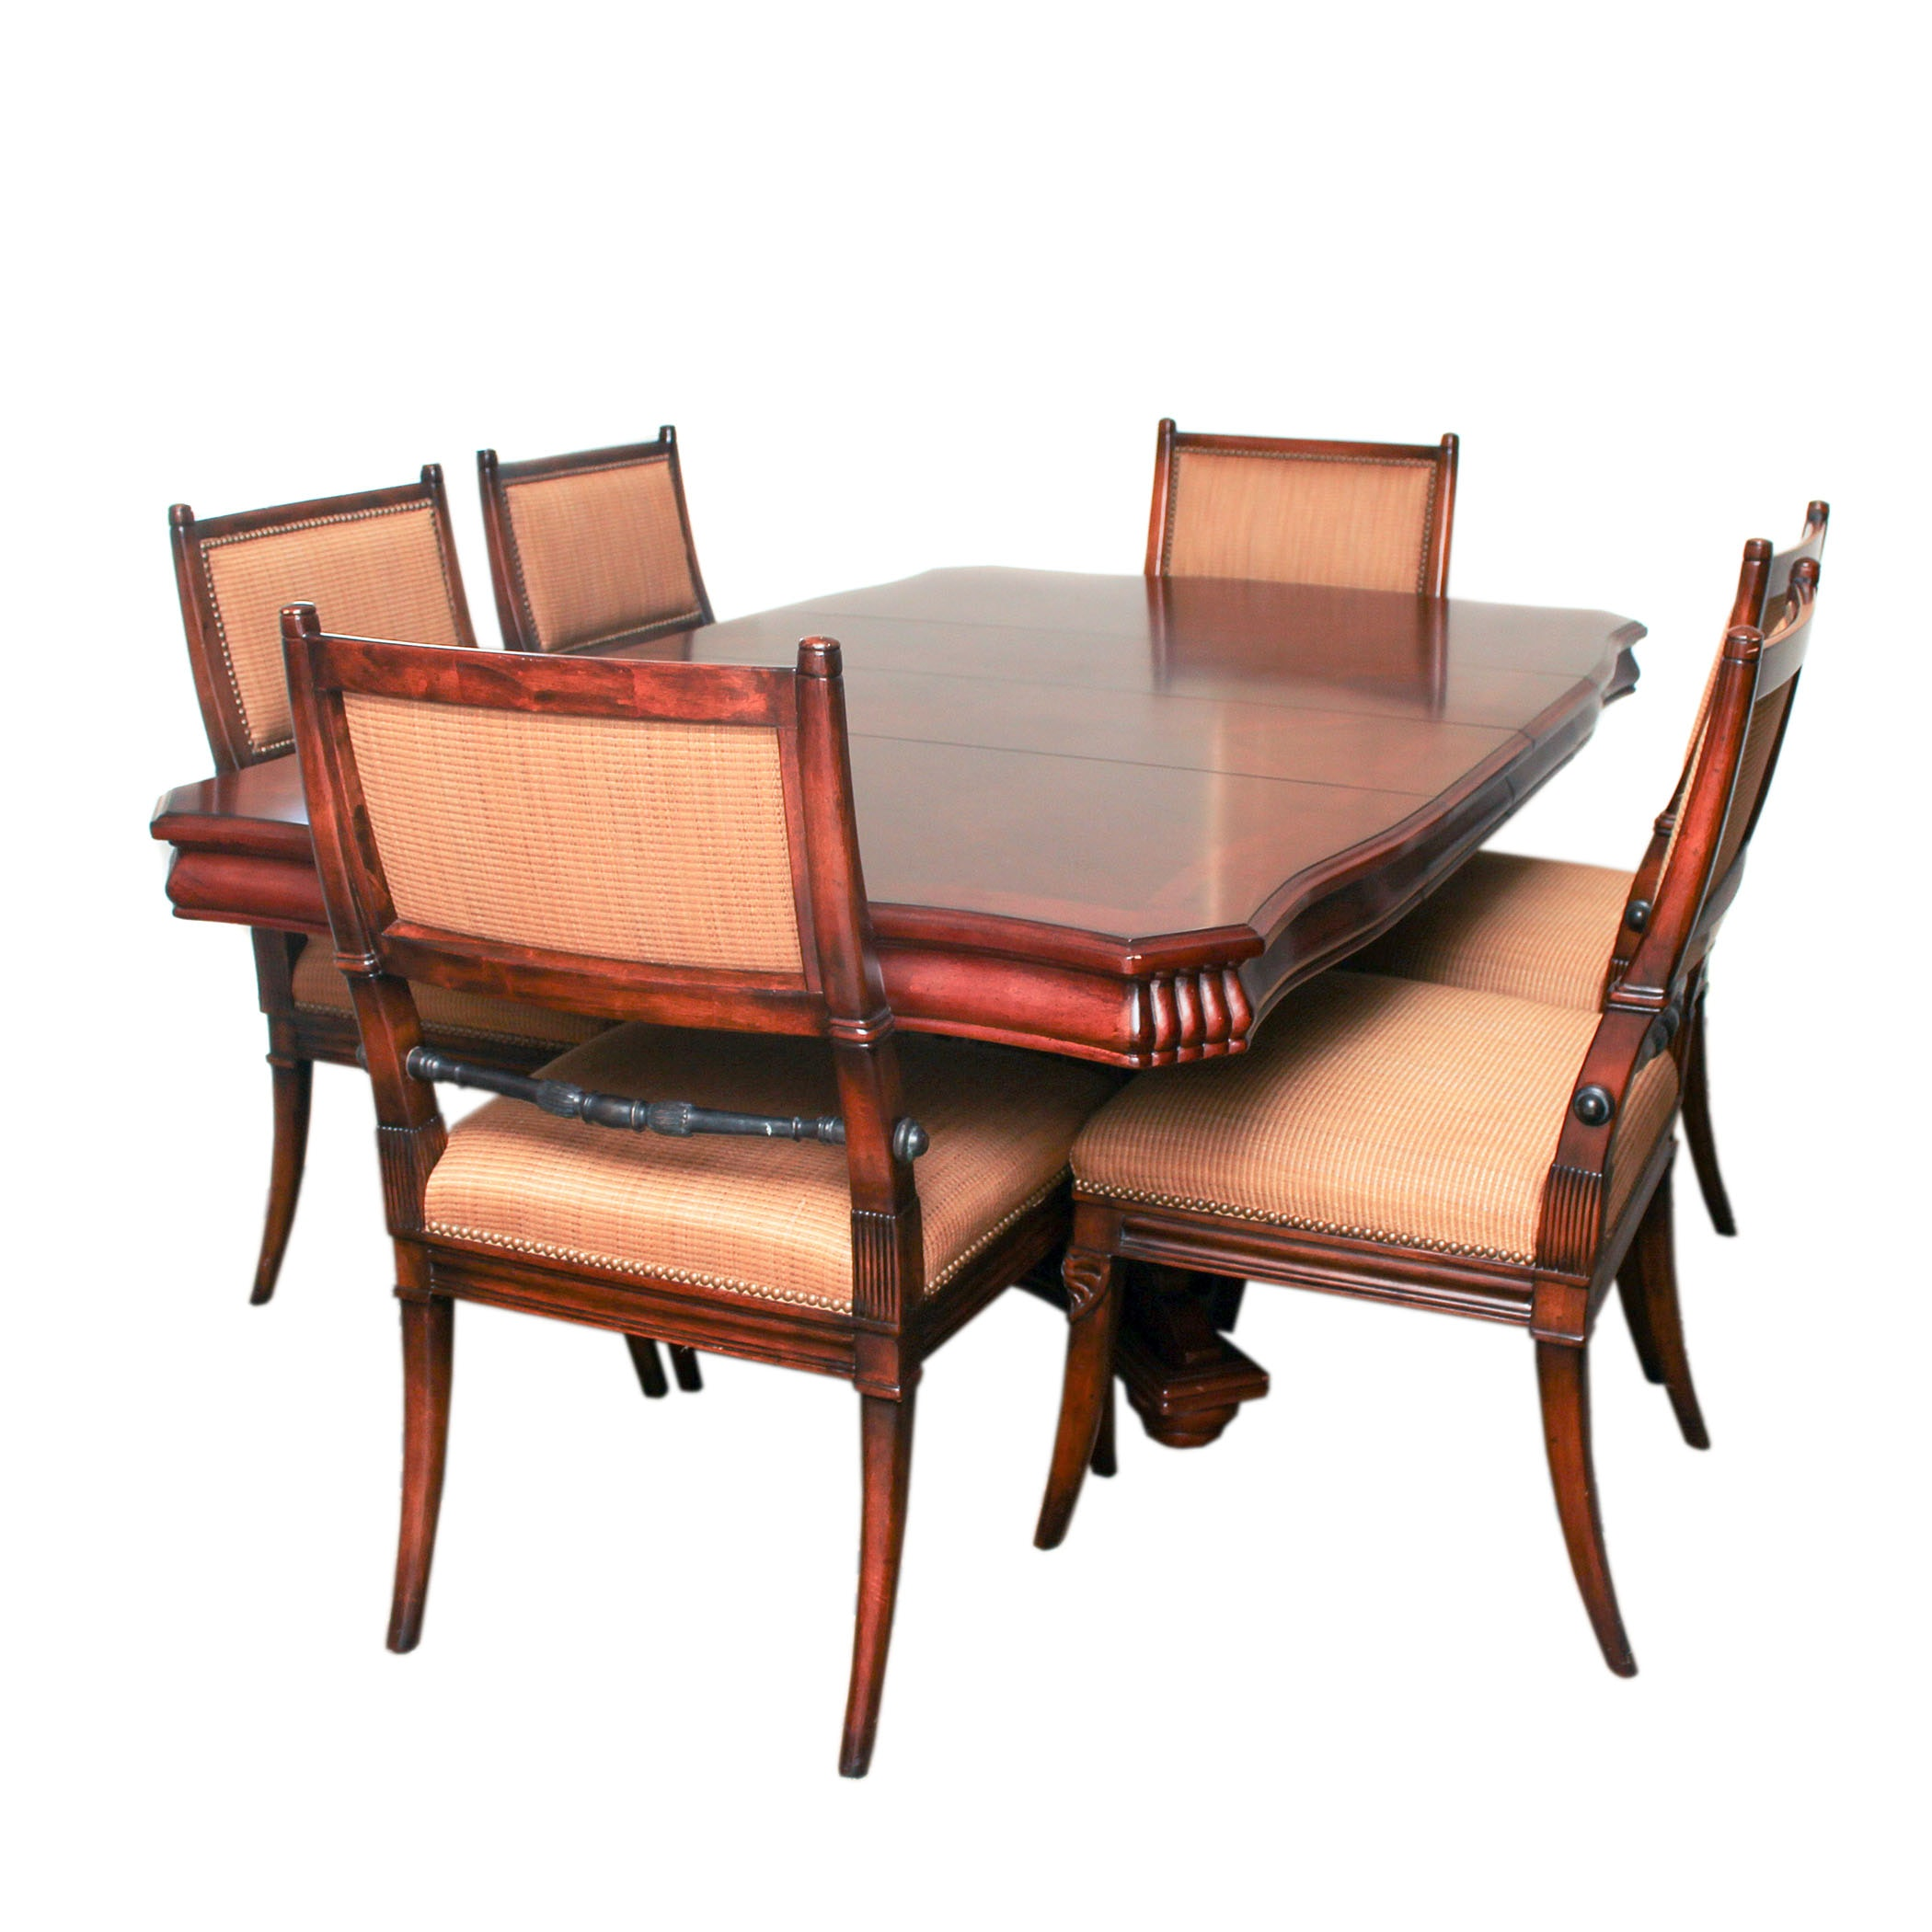 Empire Style Dining Table and Chairs